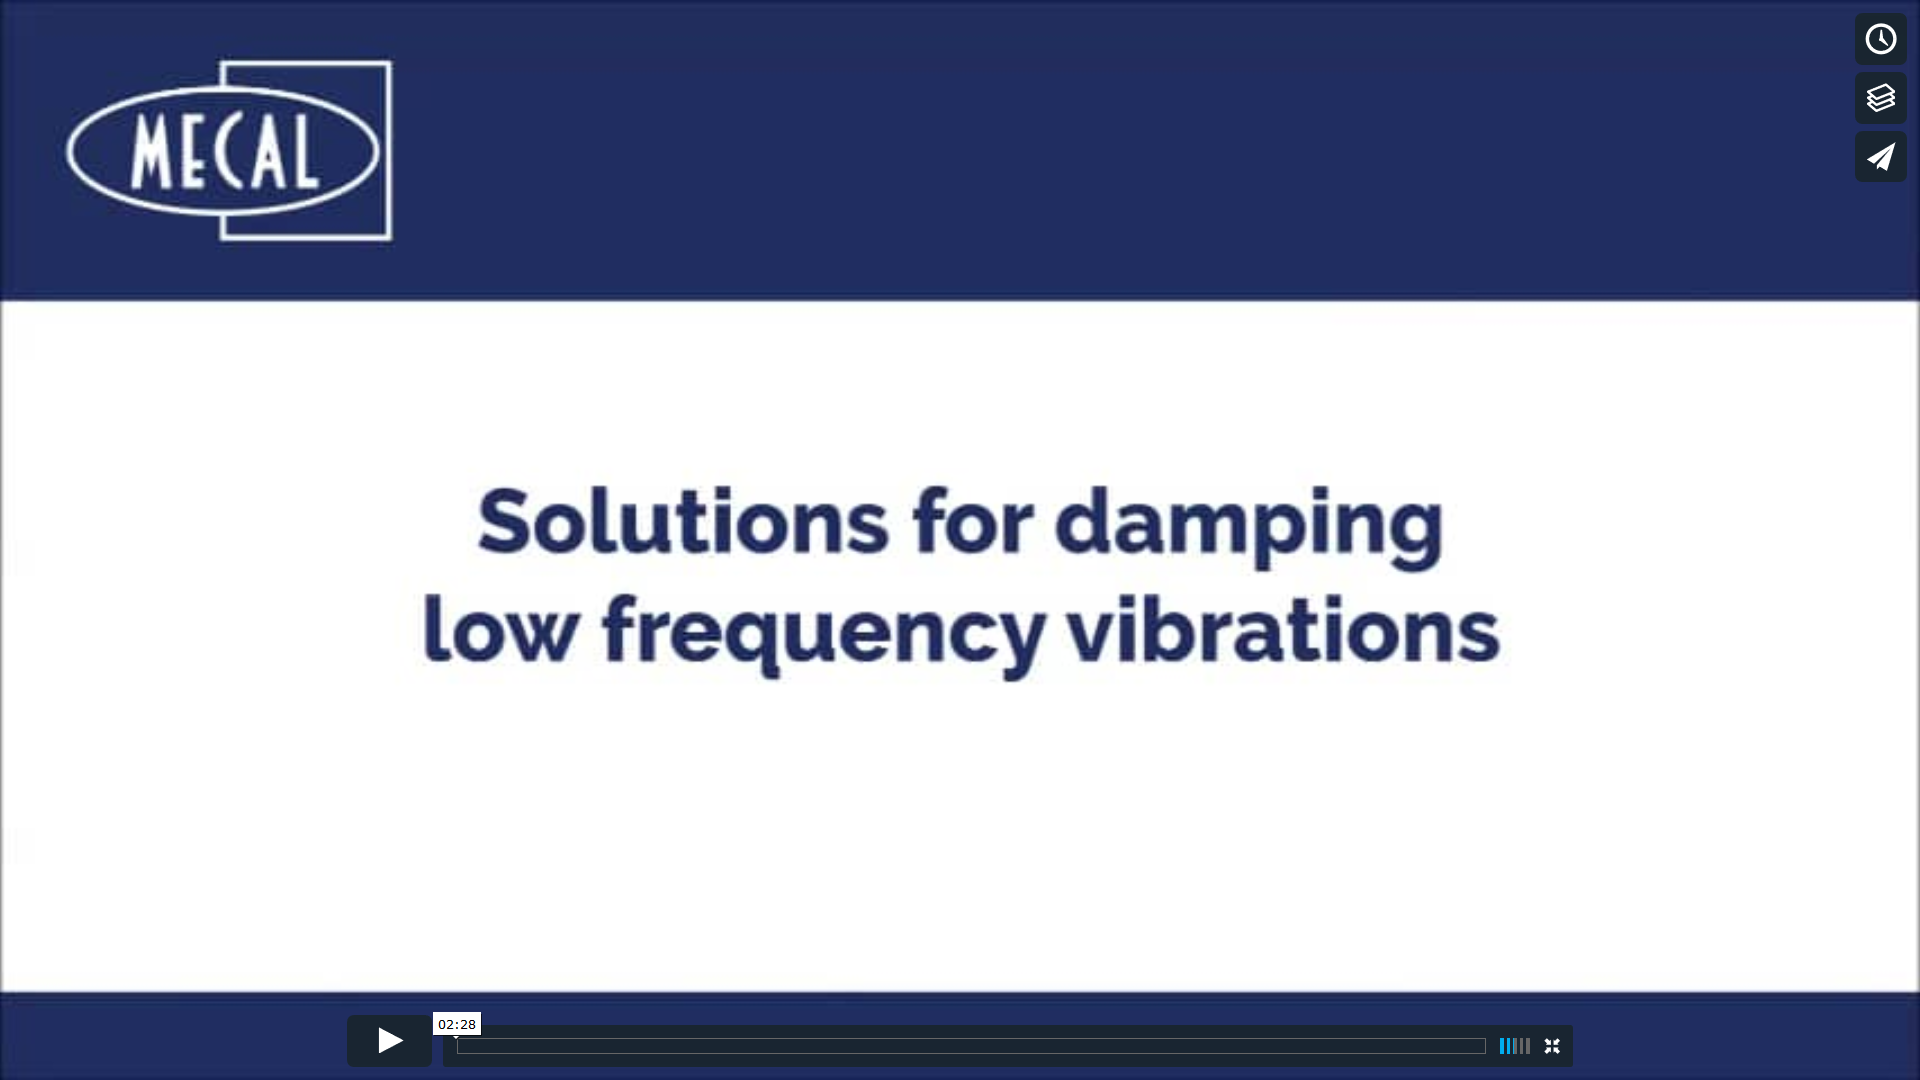 Video Solutions for damping low frequency vibrations